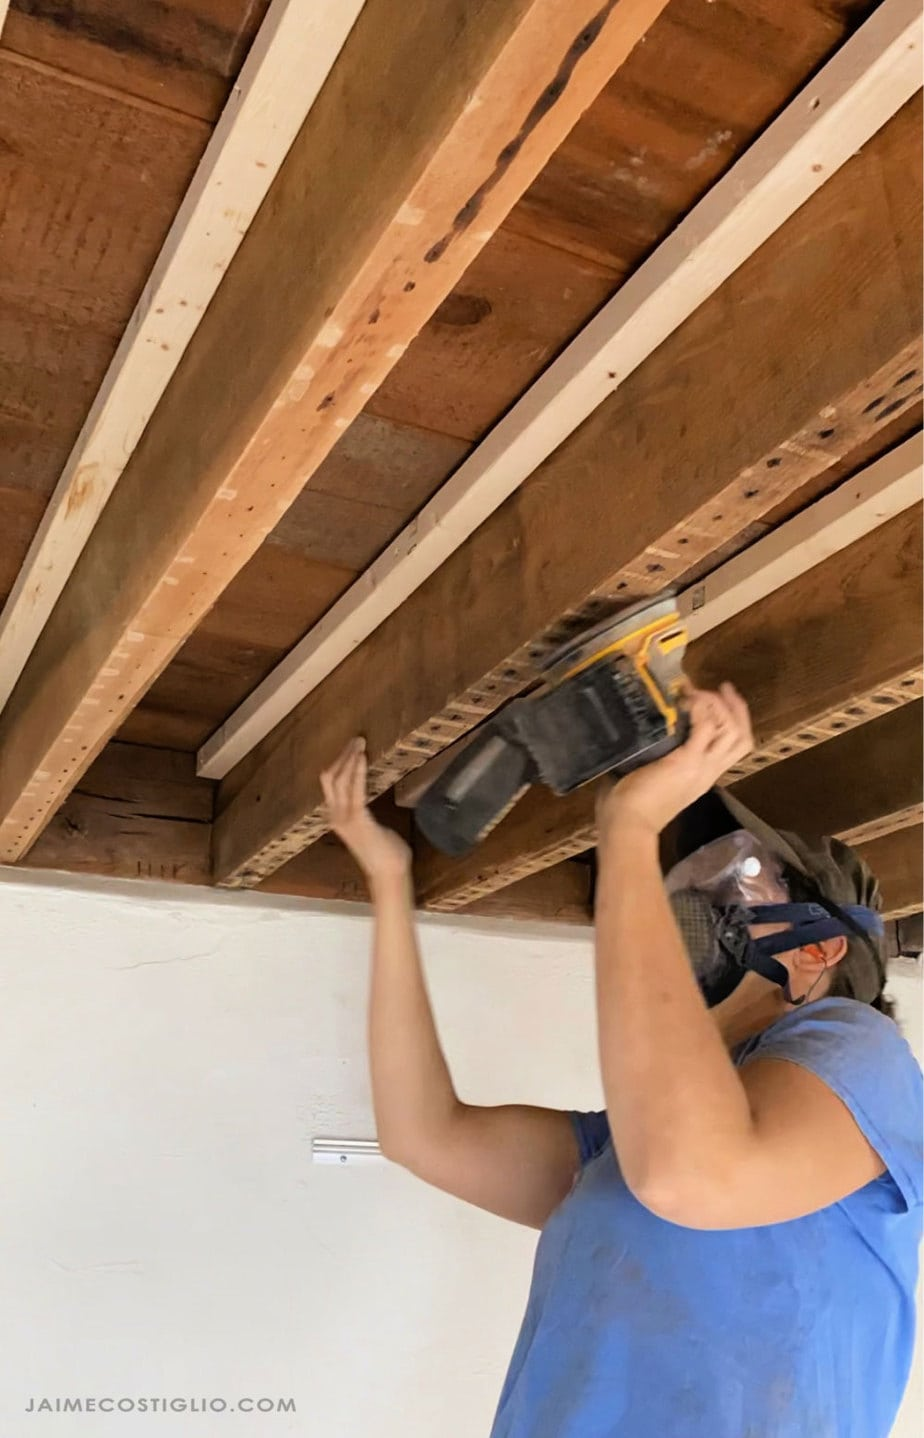 sanding exposed beams